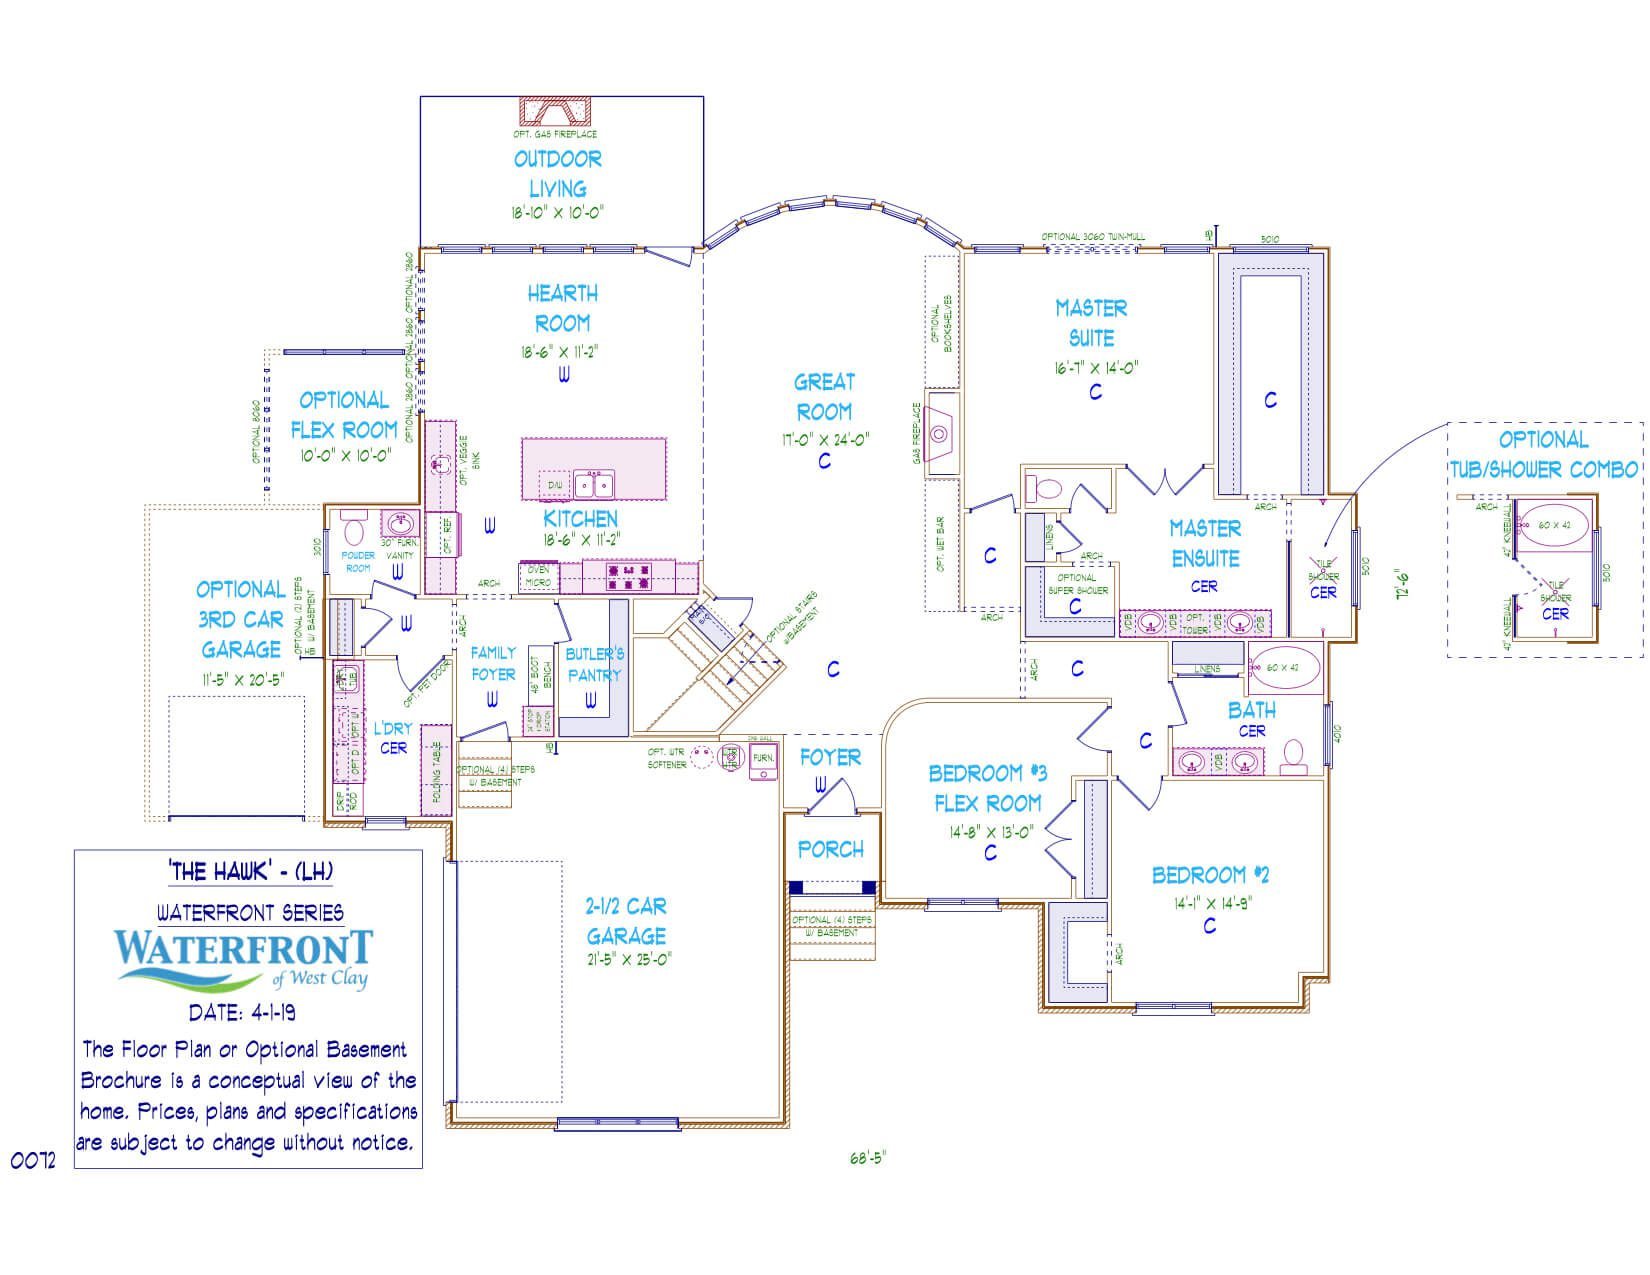 One-story, custom home floor plan layout featuring 3 car garage, large kitchen, and master suite